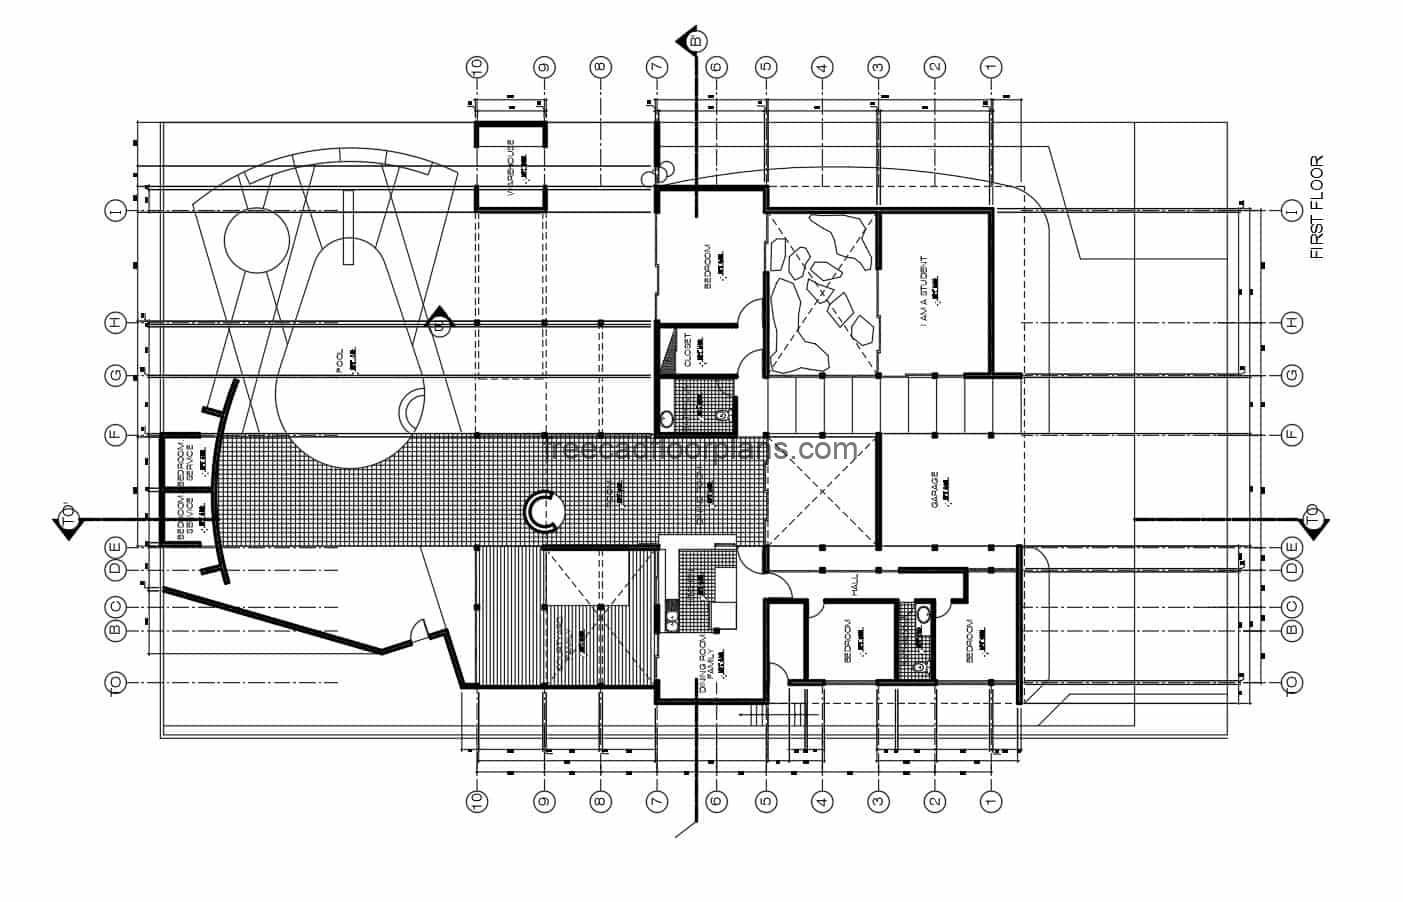 One-level house with pool and study room, with four bedrooms in total, living room, garage for two vehicles, kitchen, dining room, laundry area and service room. Architectural plans, dimensions, elevations and sections with details. CAD DWG plans for free download, simple concrete house.